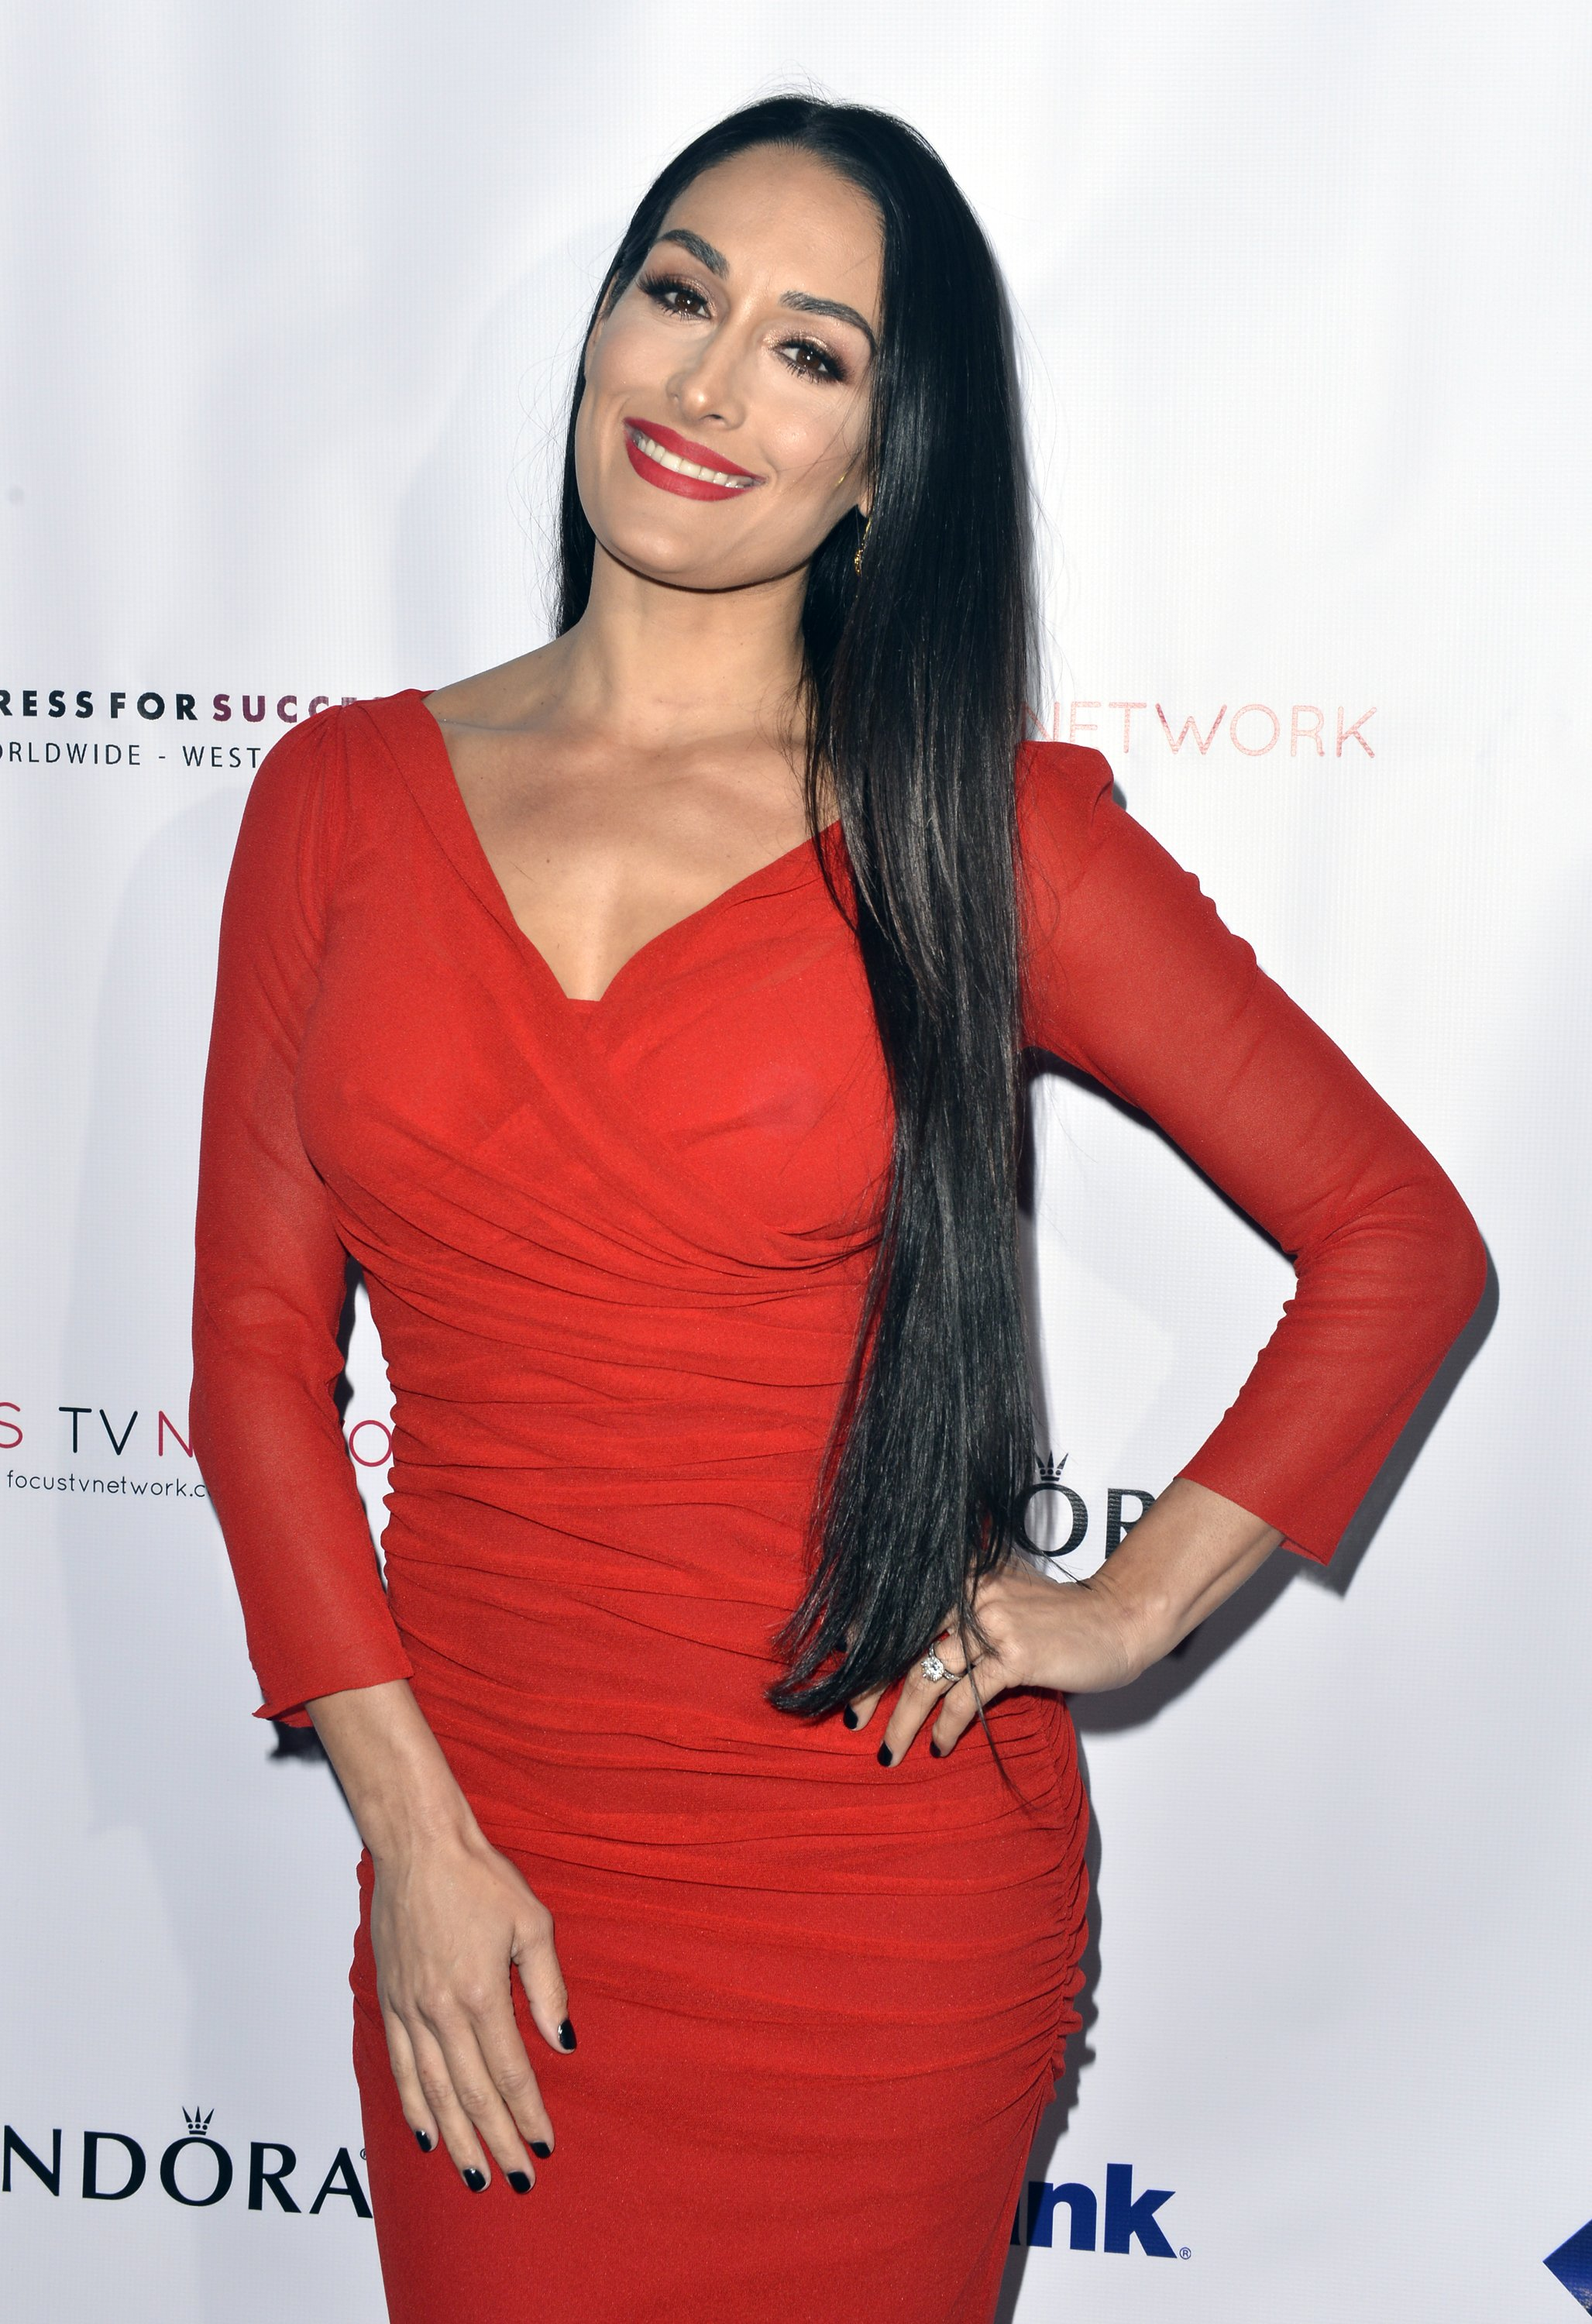 Nikki Bella attends the Shop for Success Vip Event in Los Angeles, California on November 30, 2017 | Photo: Getty Images